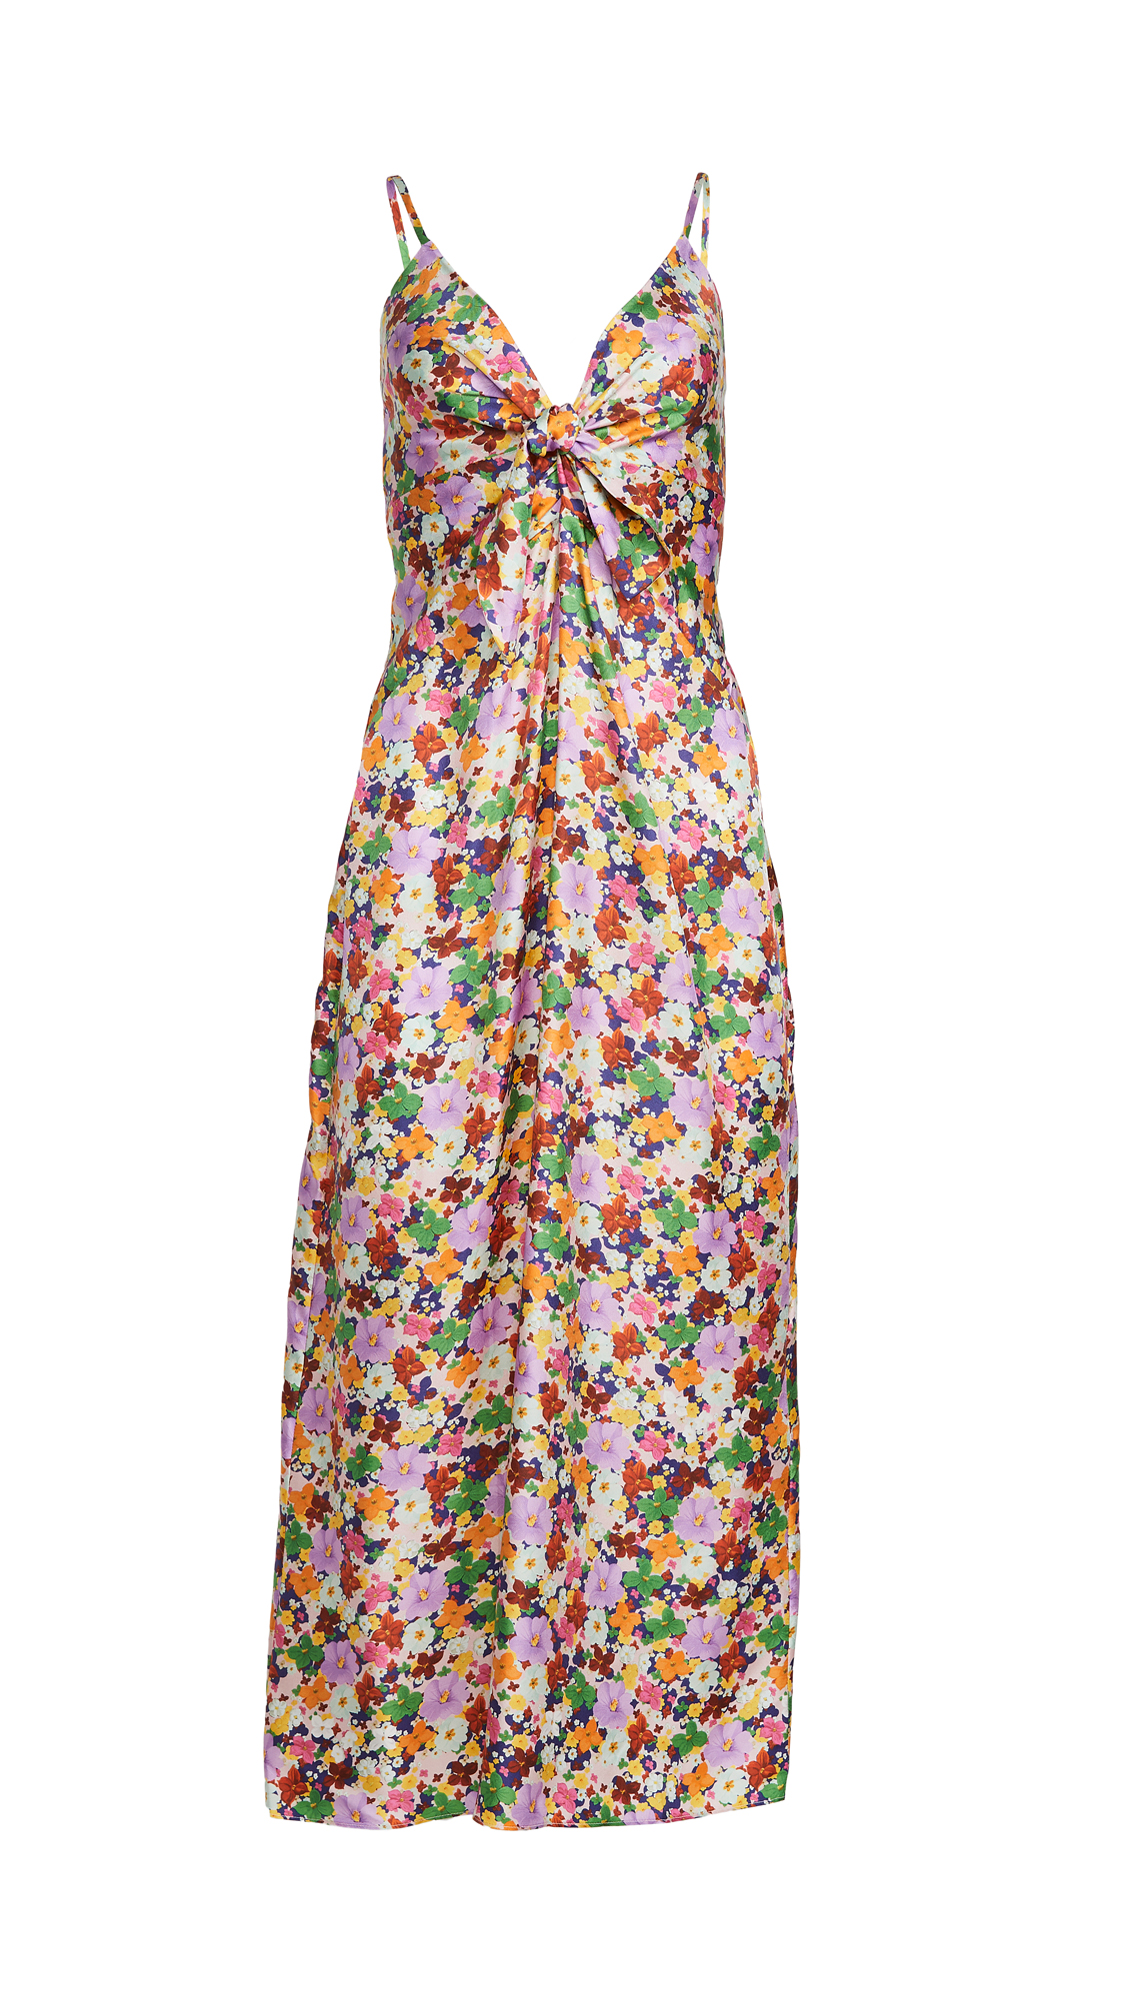 Borgo de Nor Flora Knot Dress